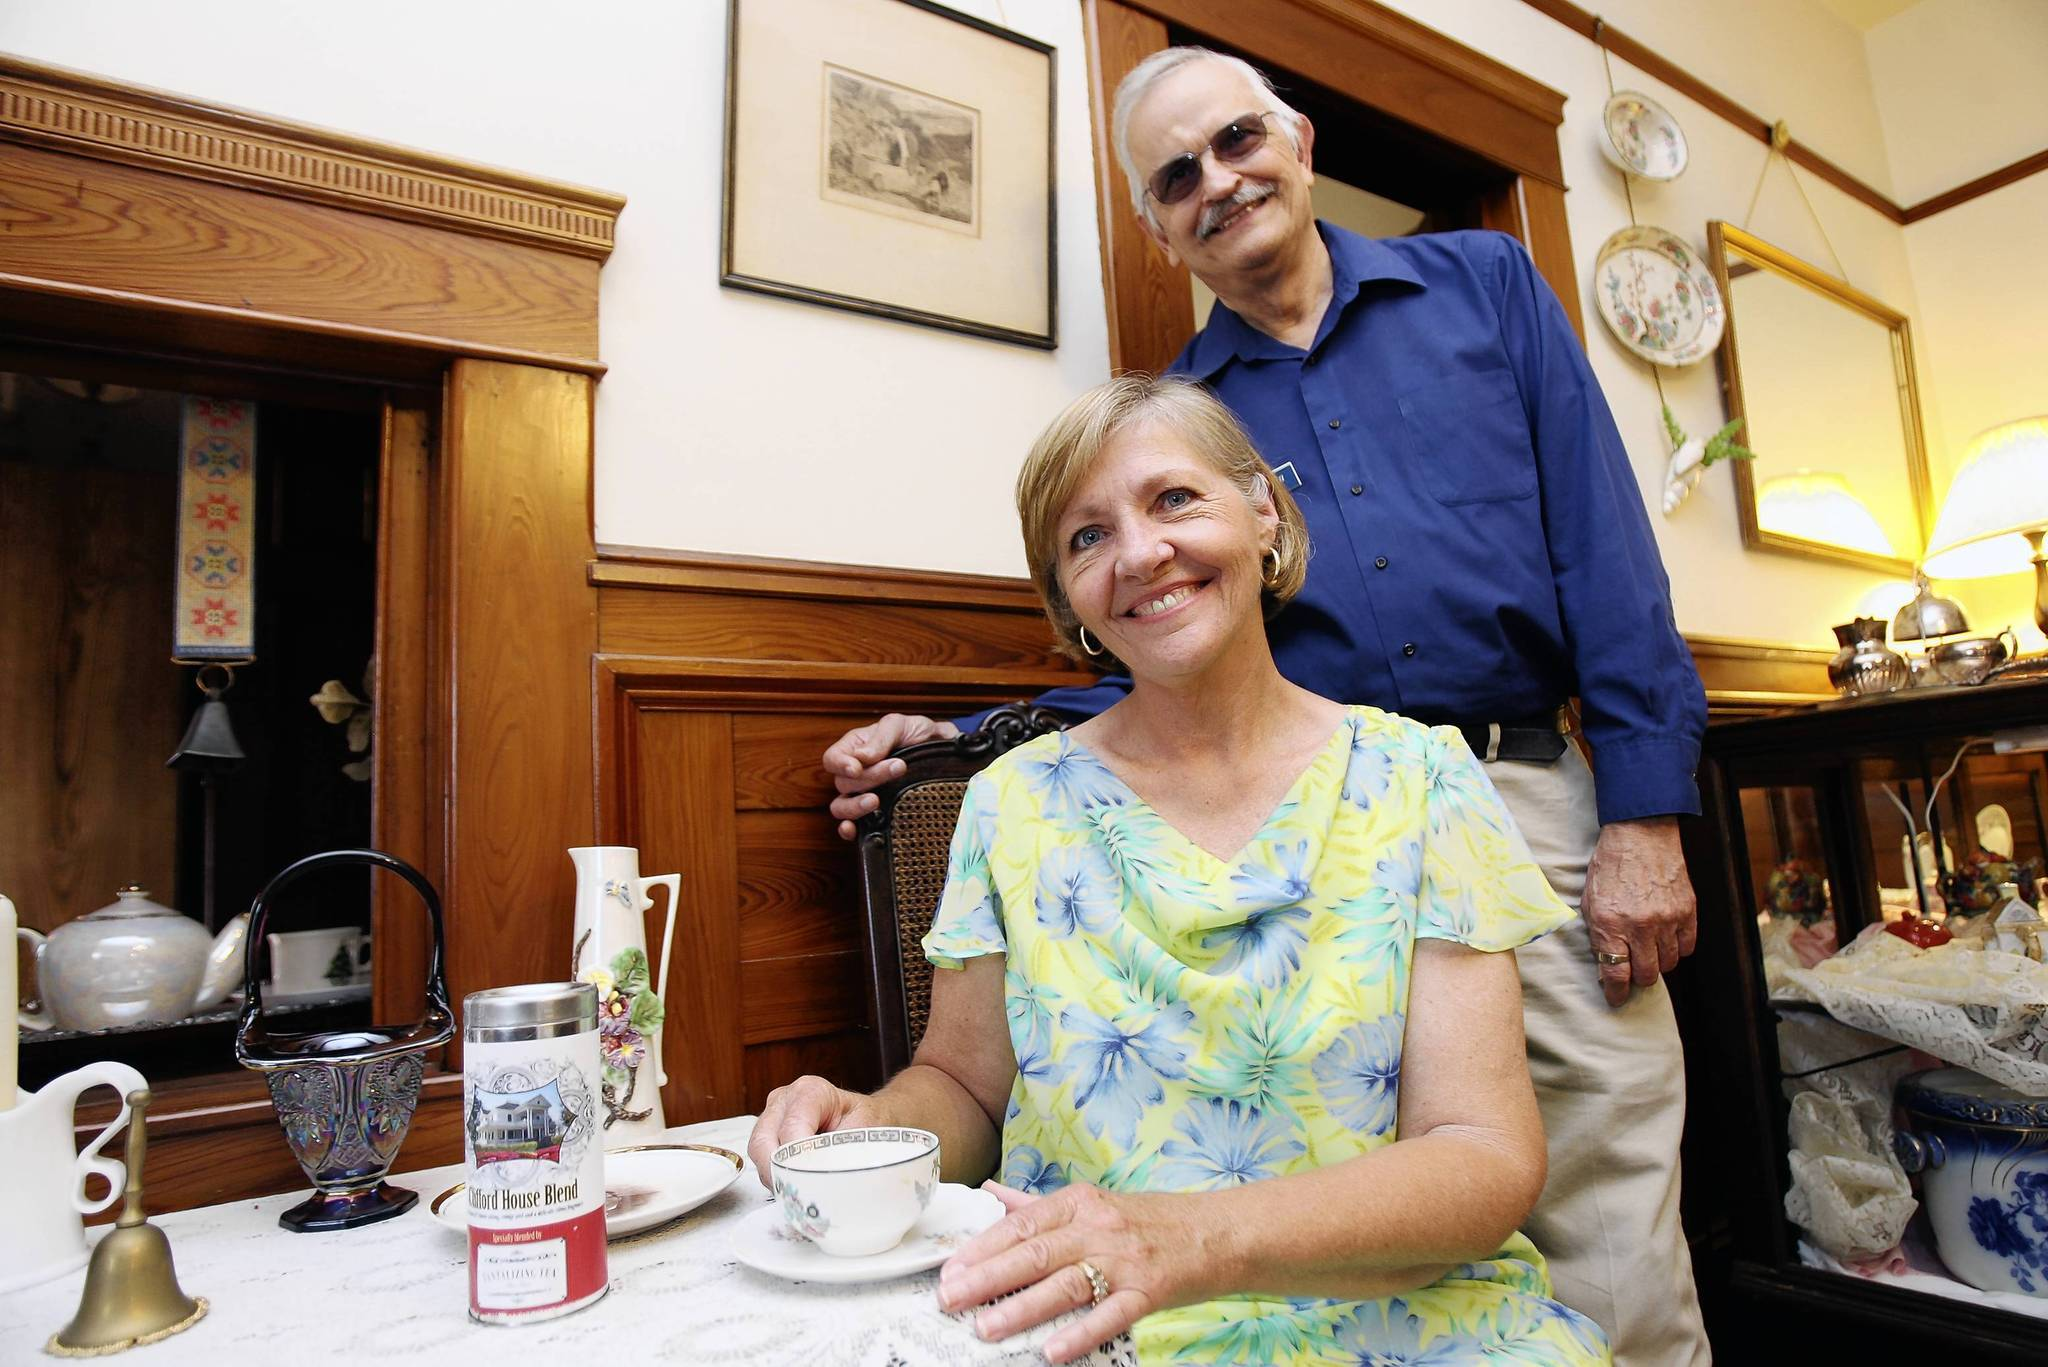 Ted Waterfall, curator of the Eustis Historical Museum, and Kathy Niles pose for a portrait on Thursday, June 21, 2012. Niles created Clifford House Blend . The tea is a intermingling of Chinese orange peel and delicate, tantalizing citrus fragrances.. (Tom Benitez/Orlando Sentinel